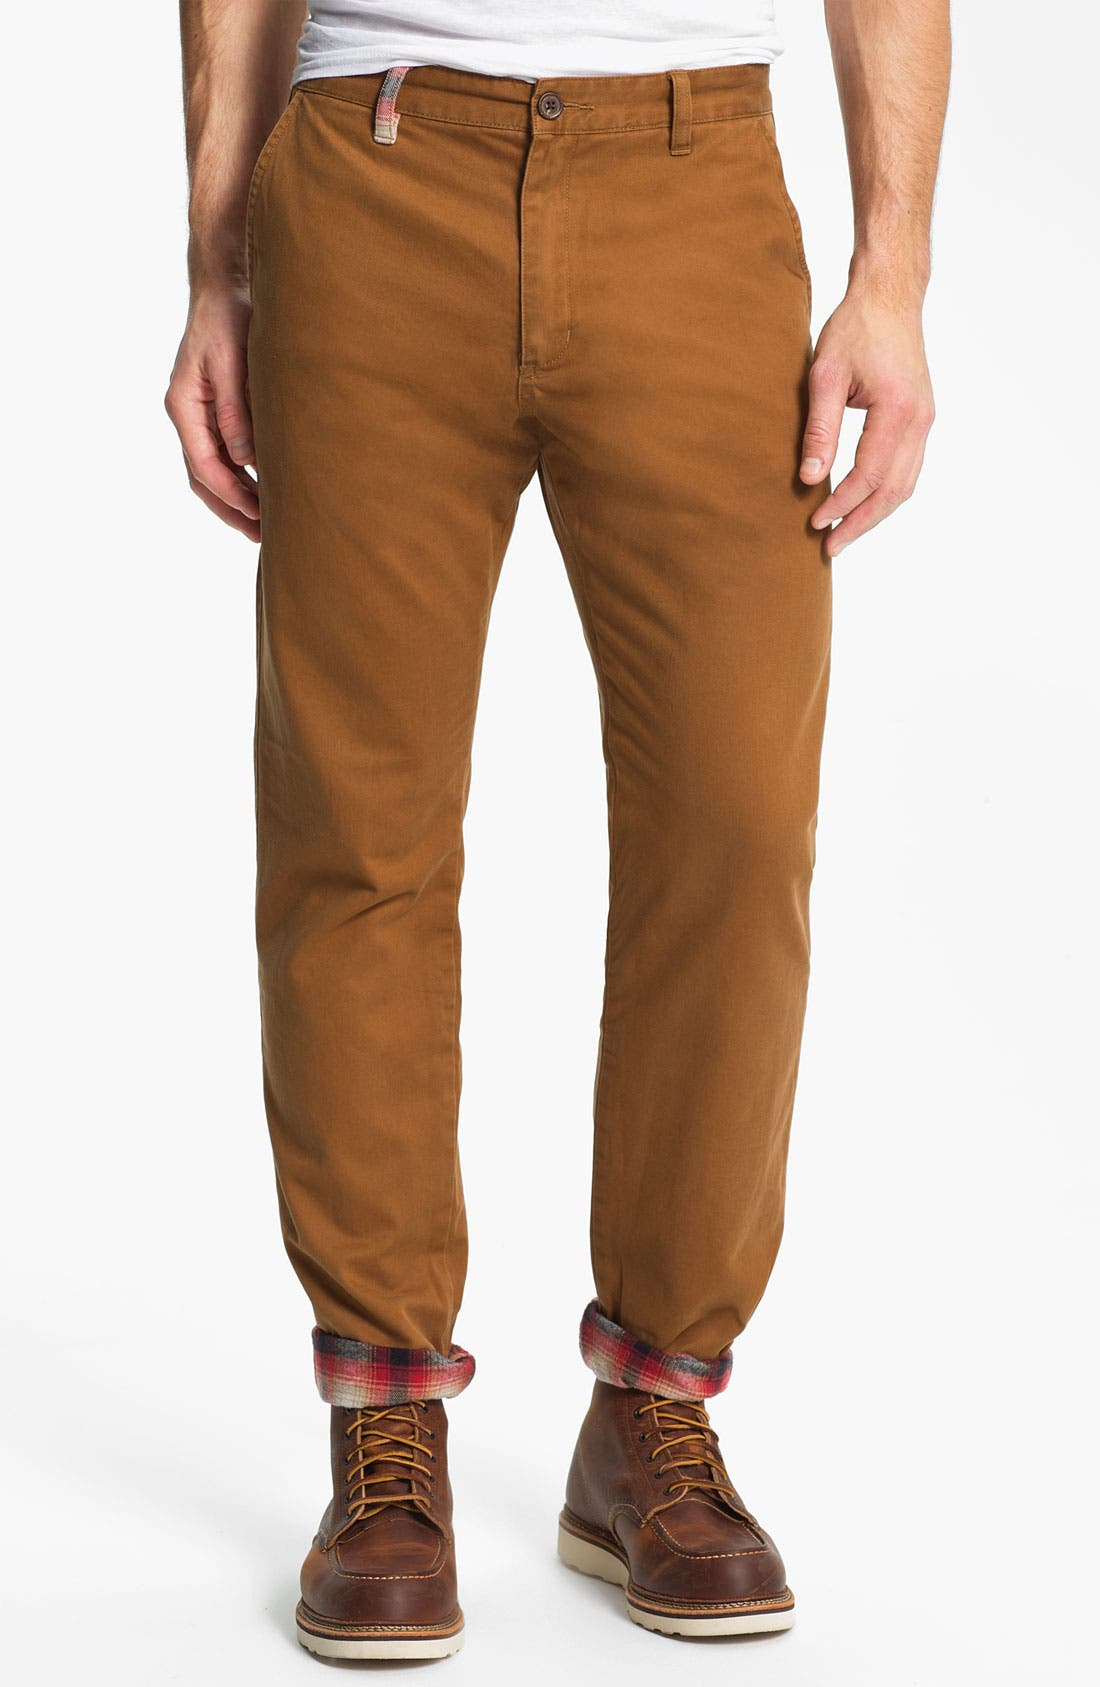 Alternate Image 1 Selected - Toddland 'Shipwreck' Flannel Lined Straight Leg Pants